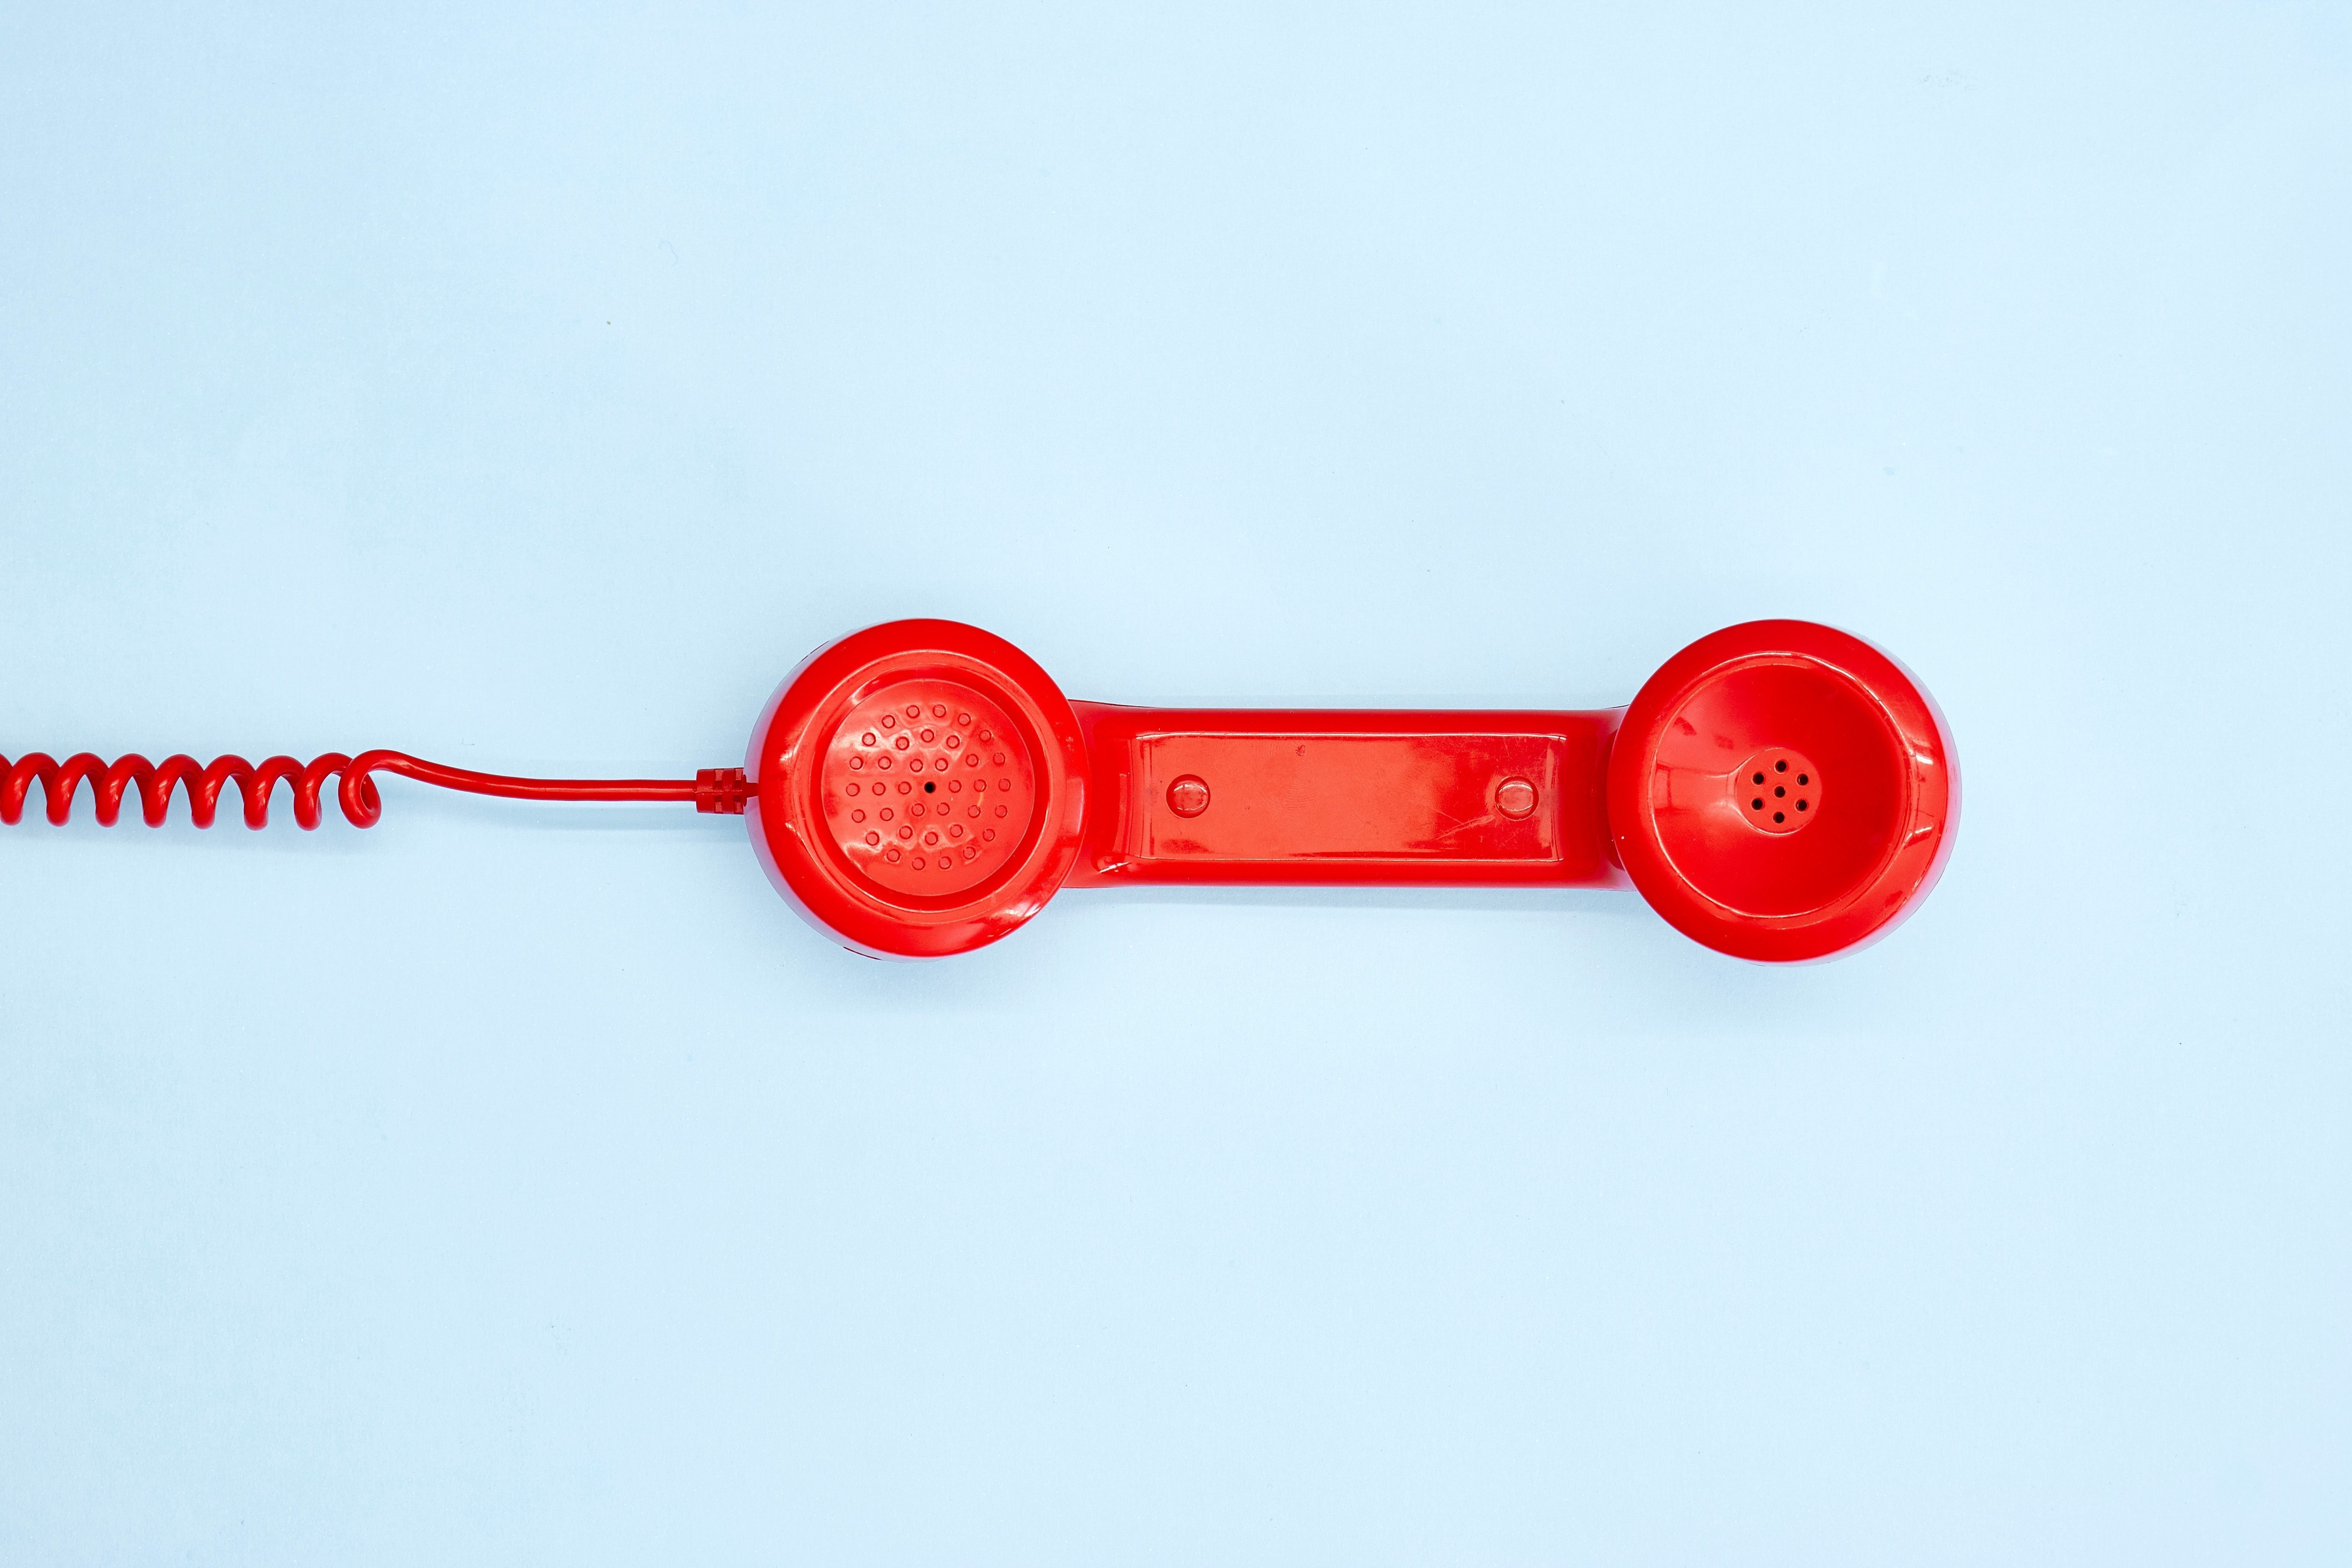 A studio photo of a red rotary telephone